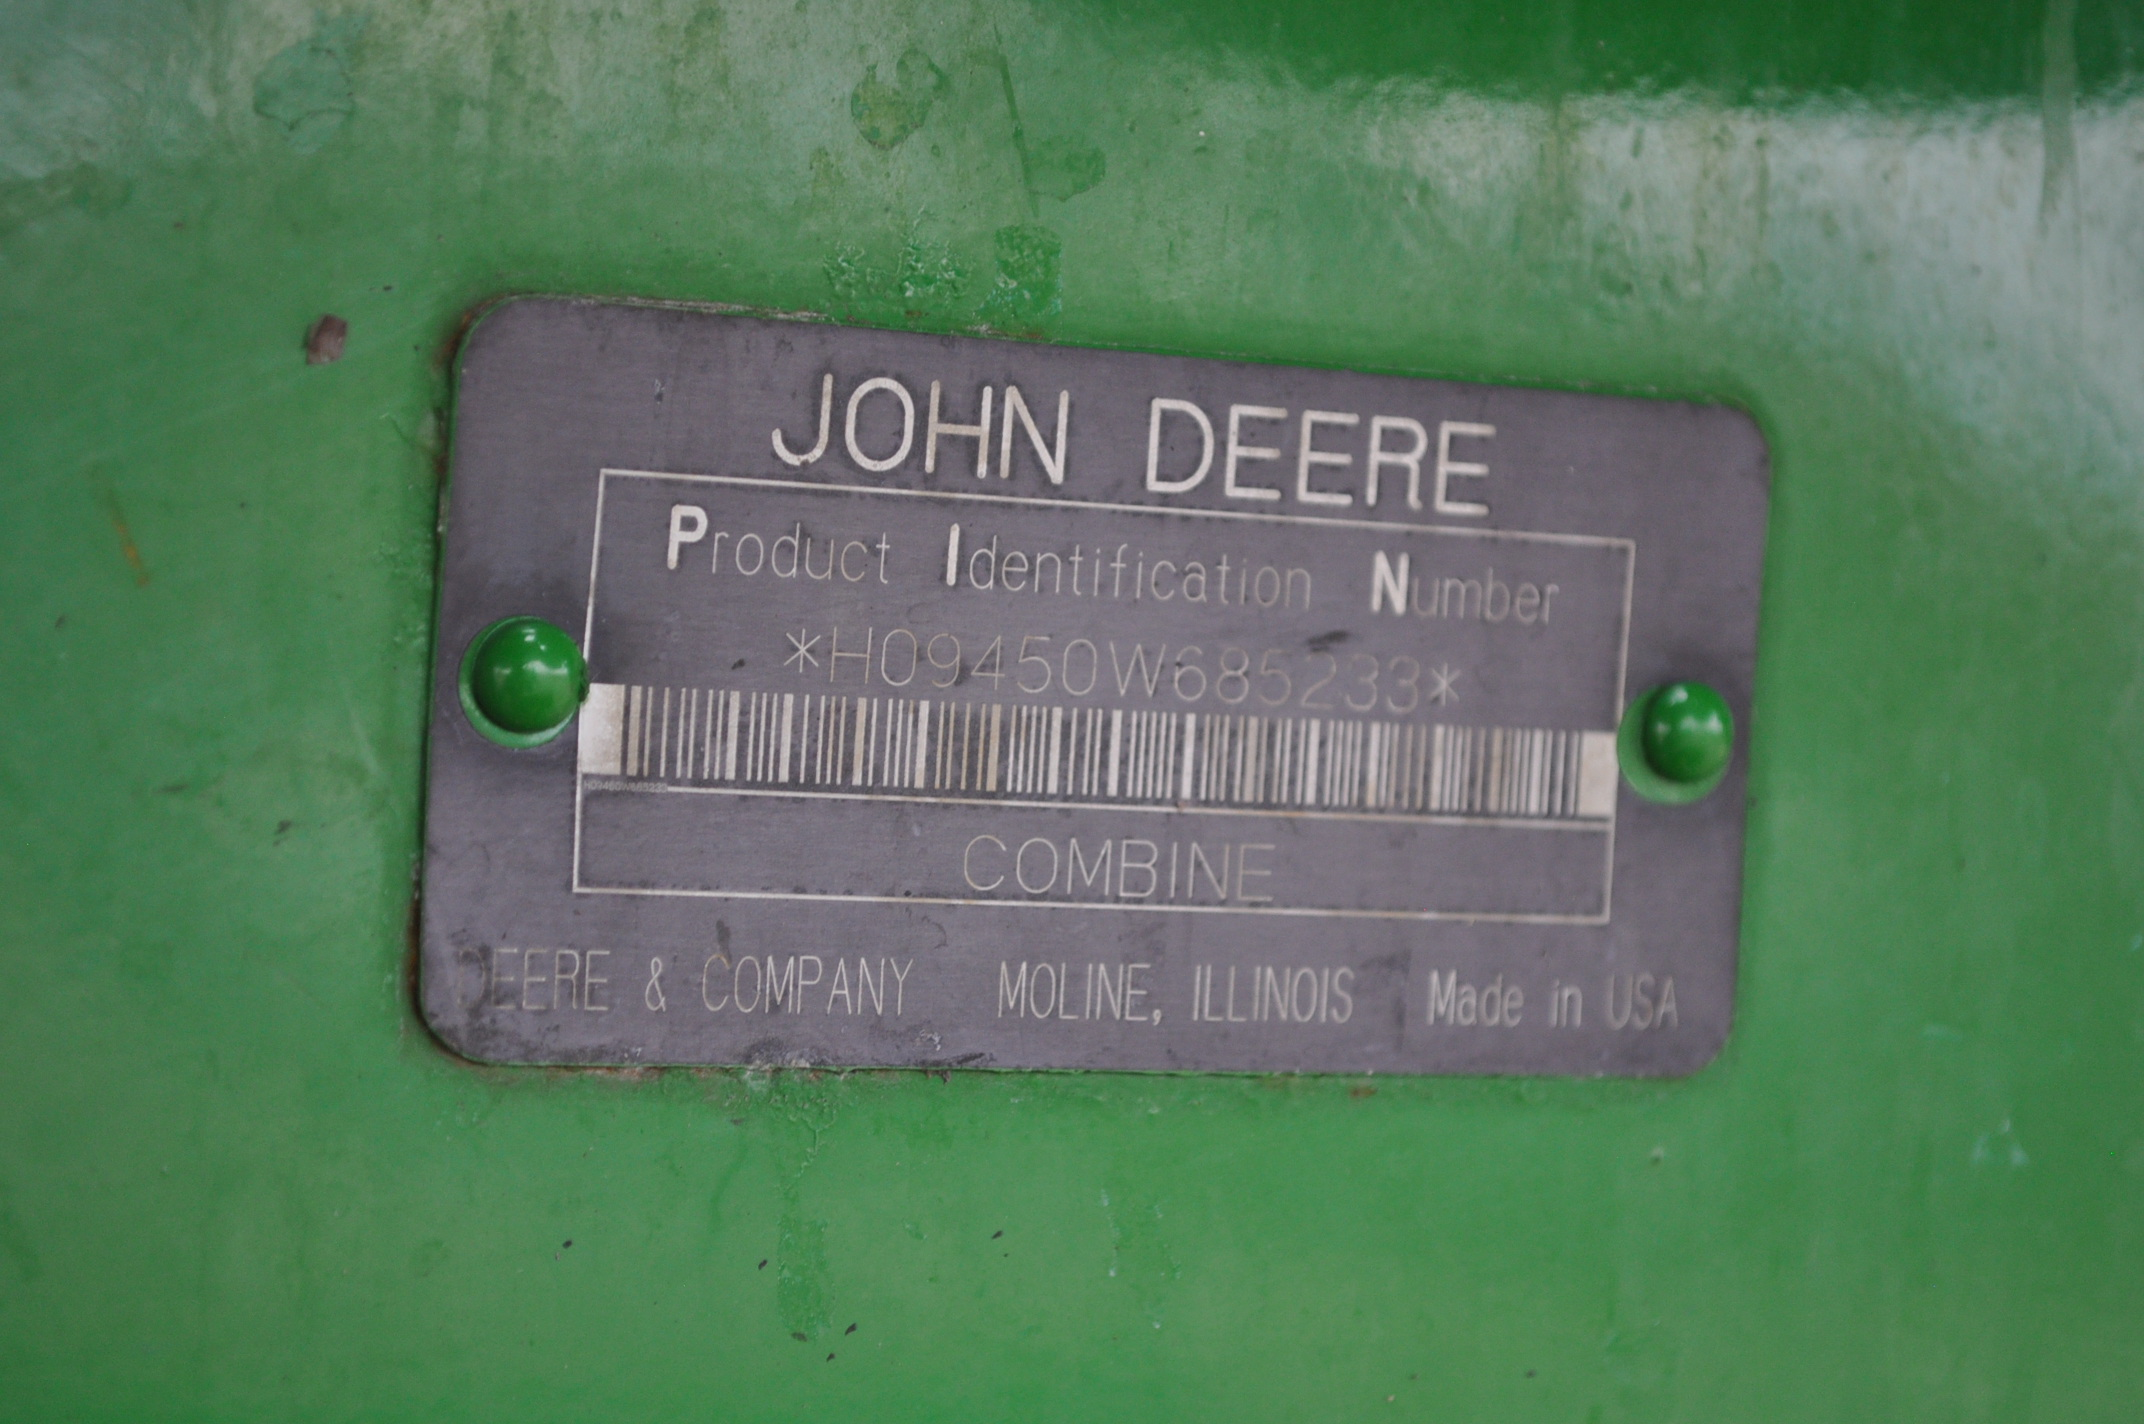 John Deere 9450 combine, NEW 24.5-32 drive, NEW 14.9-24 rear, chopper, spreader, 3335 engine hrs, - Image 17 of 18